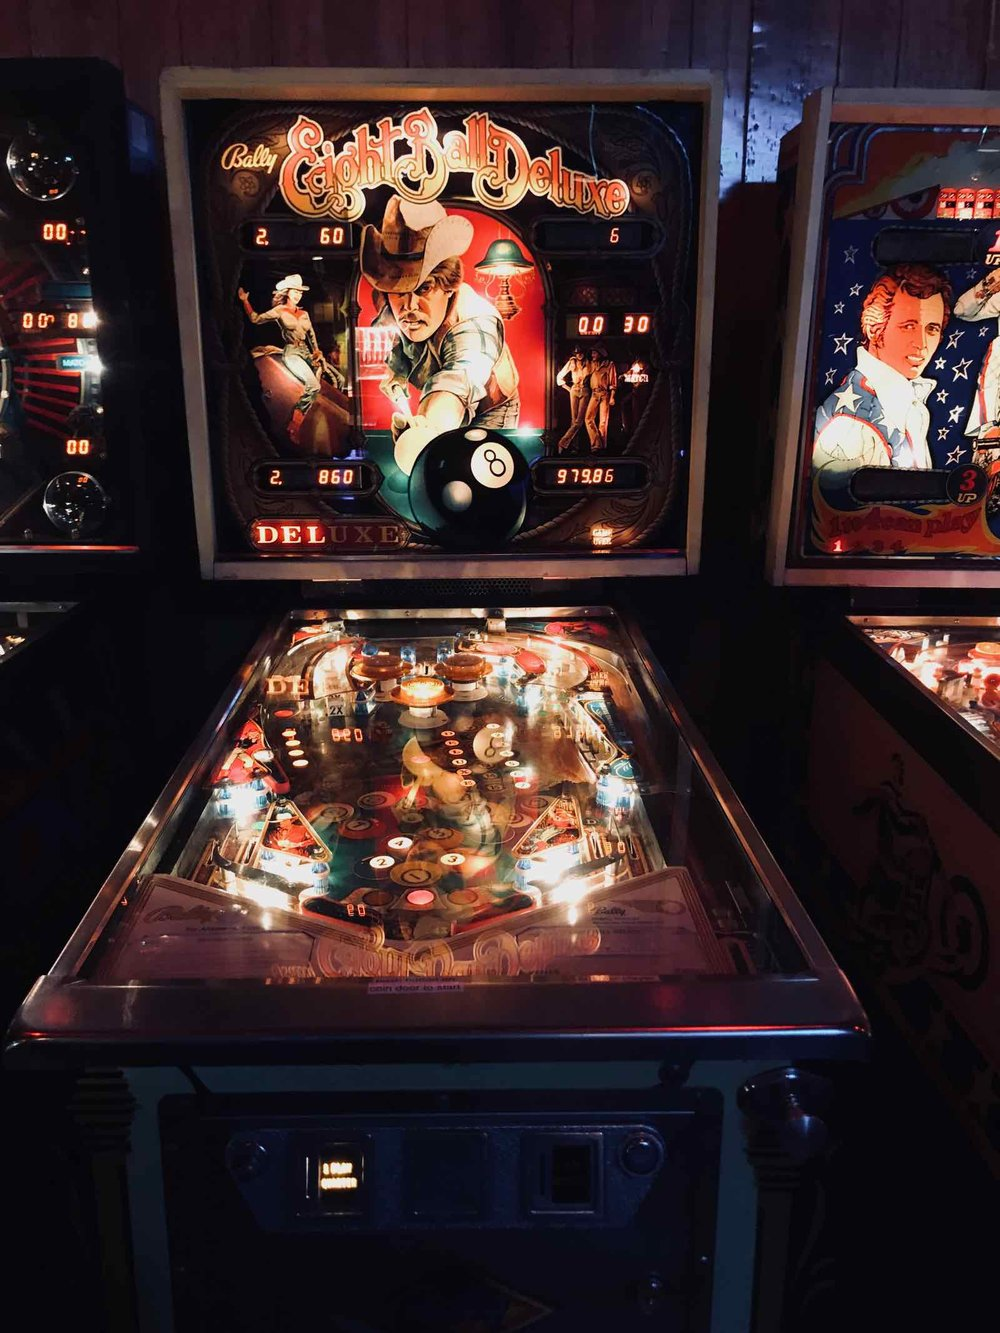 walts-bar-eagle-rock-pinball-7.jpg